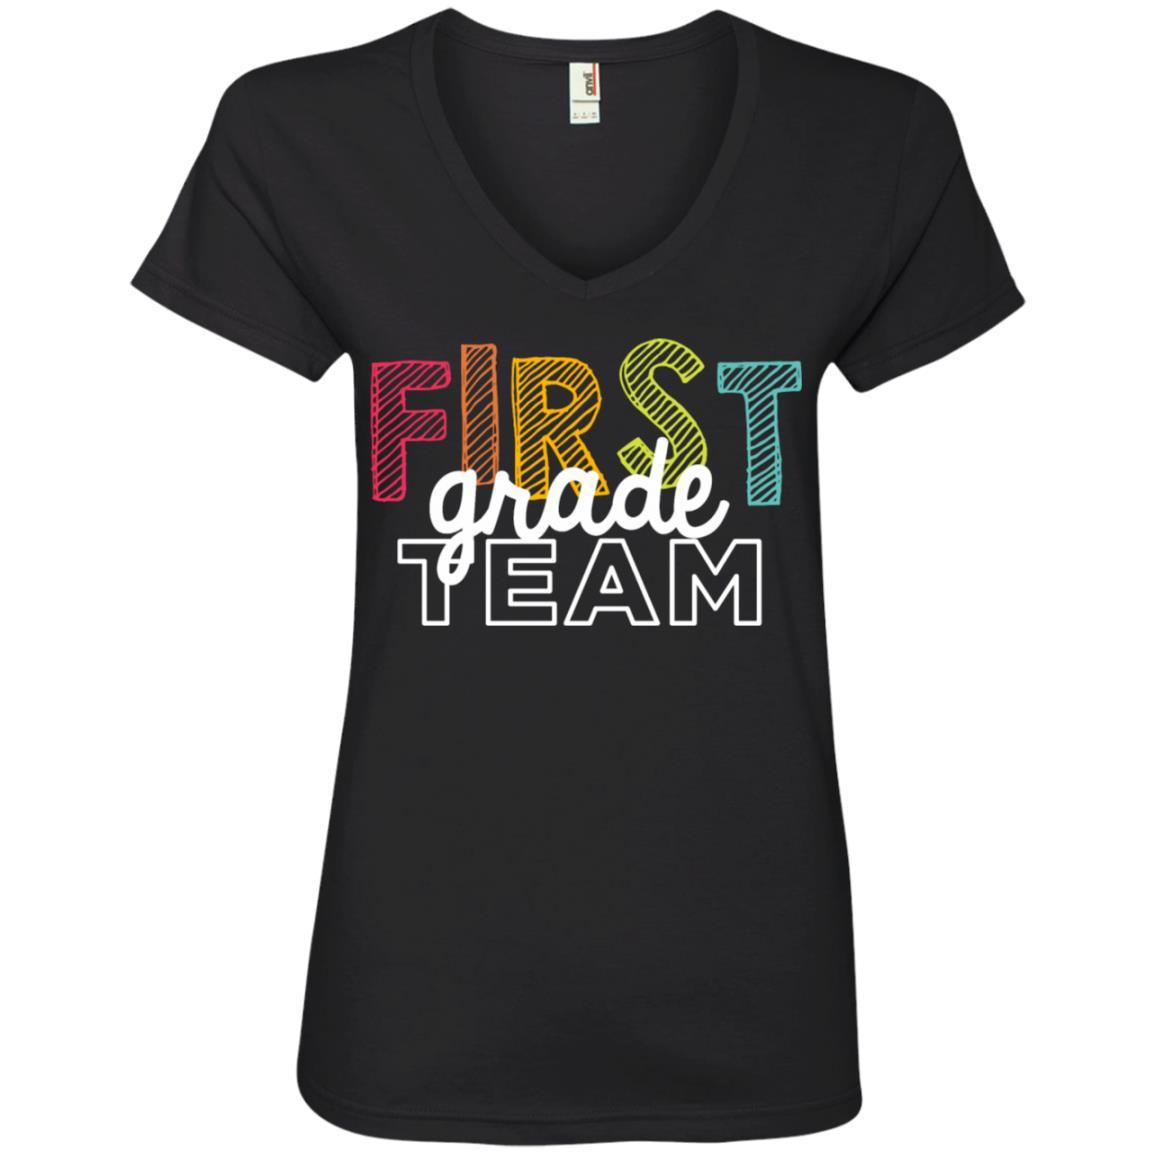 First Grade Team Shirts - Ladies' V-Neck T-Shirt Style / Color / Size